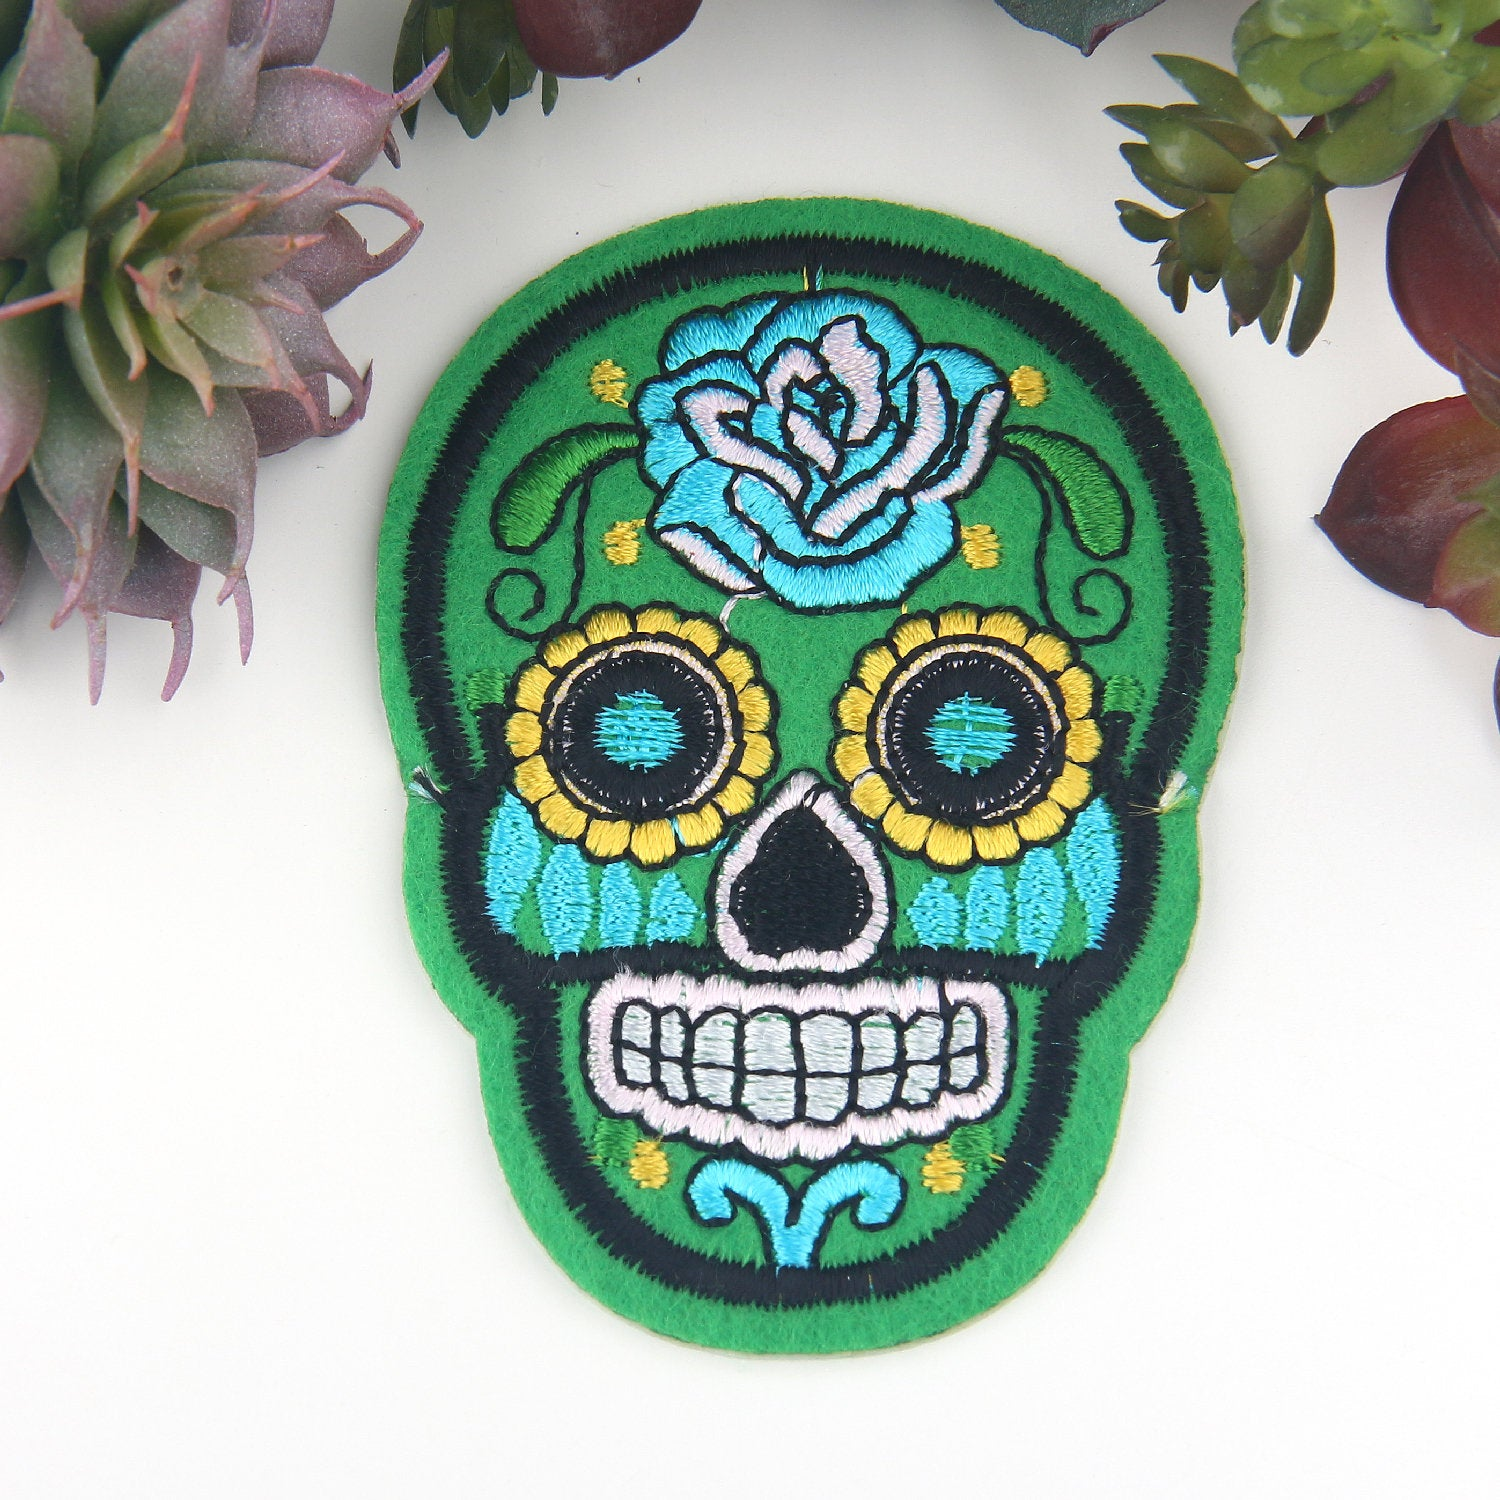 Green, Skull Applique, Skull Patch, Day of The Dead Patch, Halloween Iron-on Applique, Iron-on Patch, Emroidered Iron-on Applique, 1 Piece